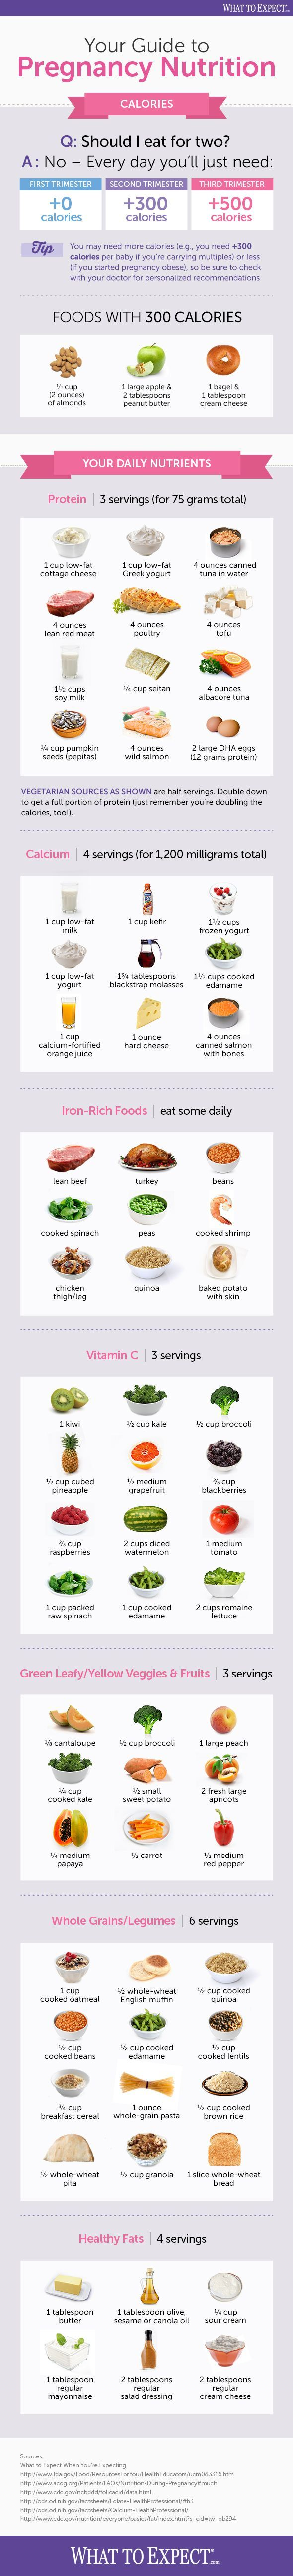 An easy-to-read and share infographic offers the basics of pregnancy nutrition, from calories to best foods to eat.